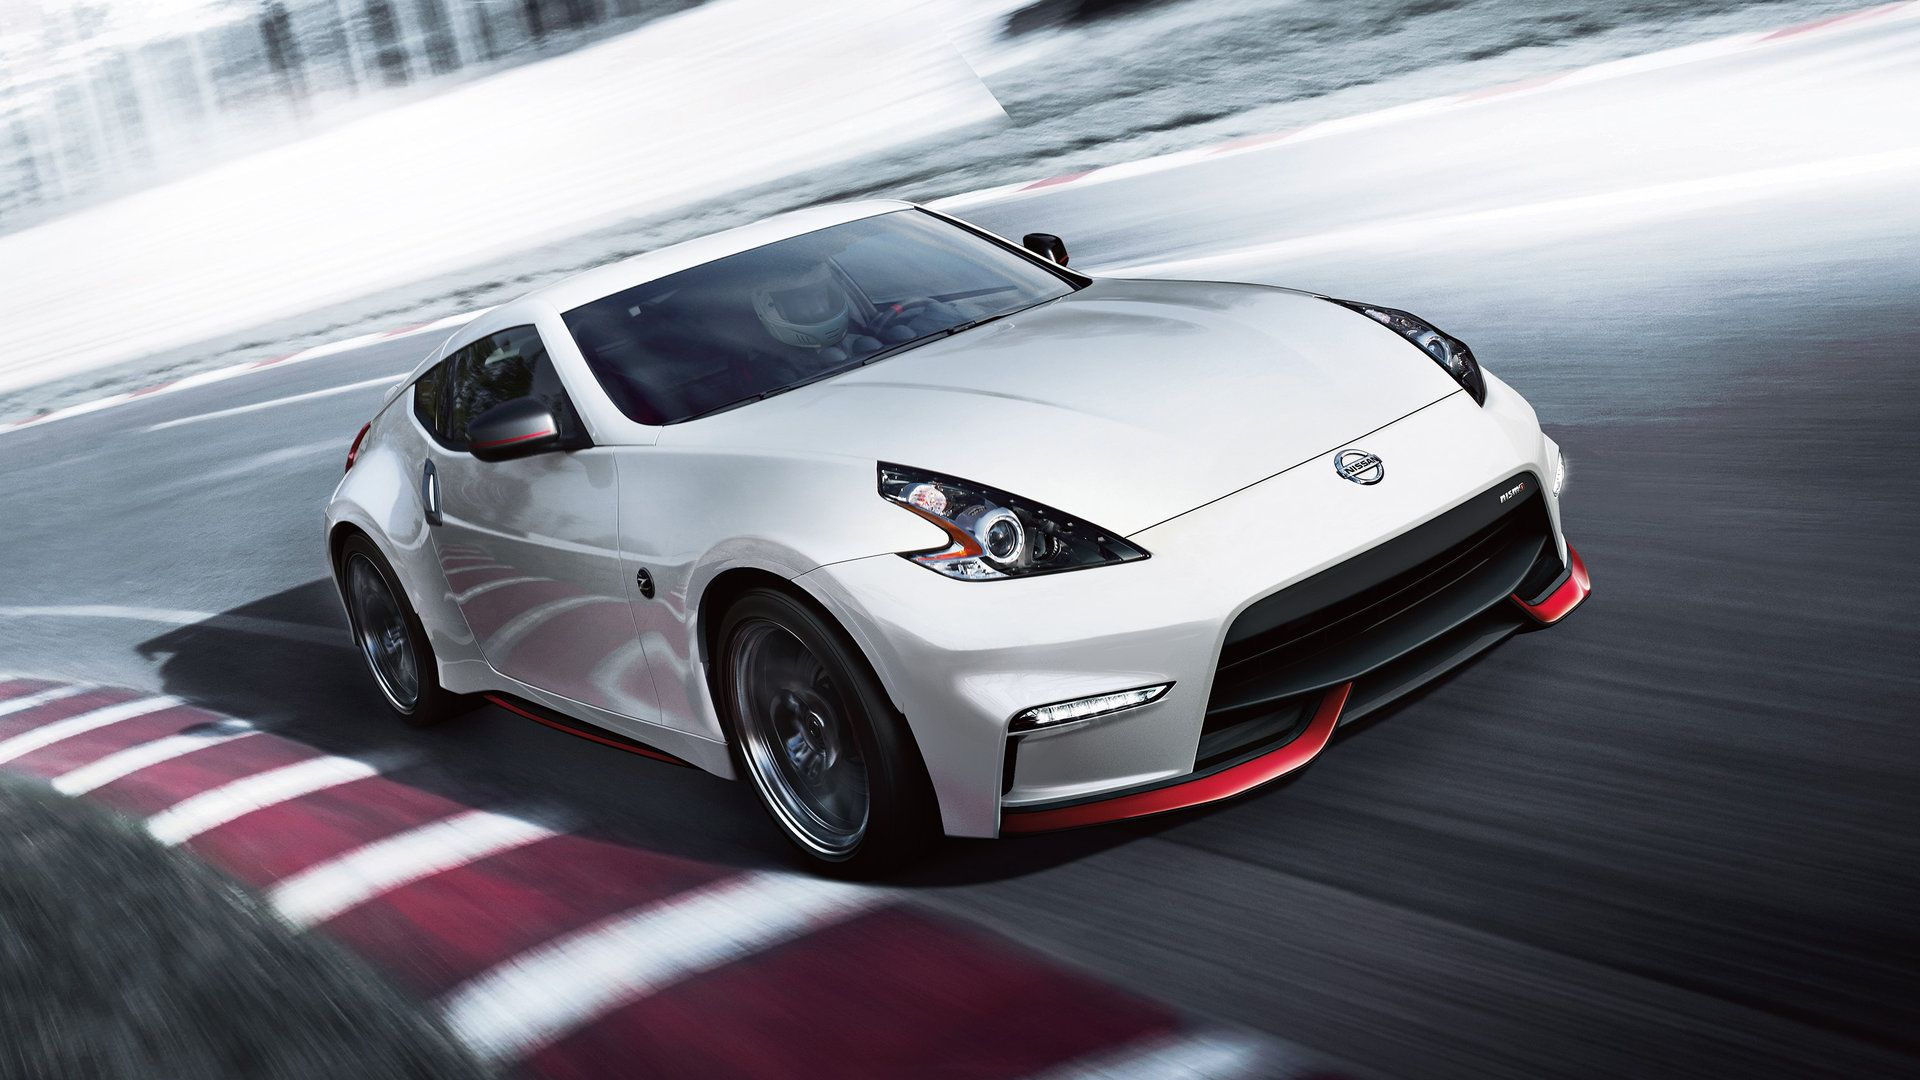 2015 nissan 370z nismo wallpaper hd http hdcarwallfx. Black Bedroom Furniture Sets. Home Design Ideas